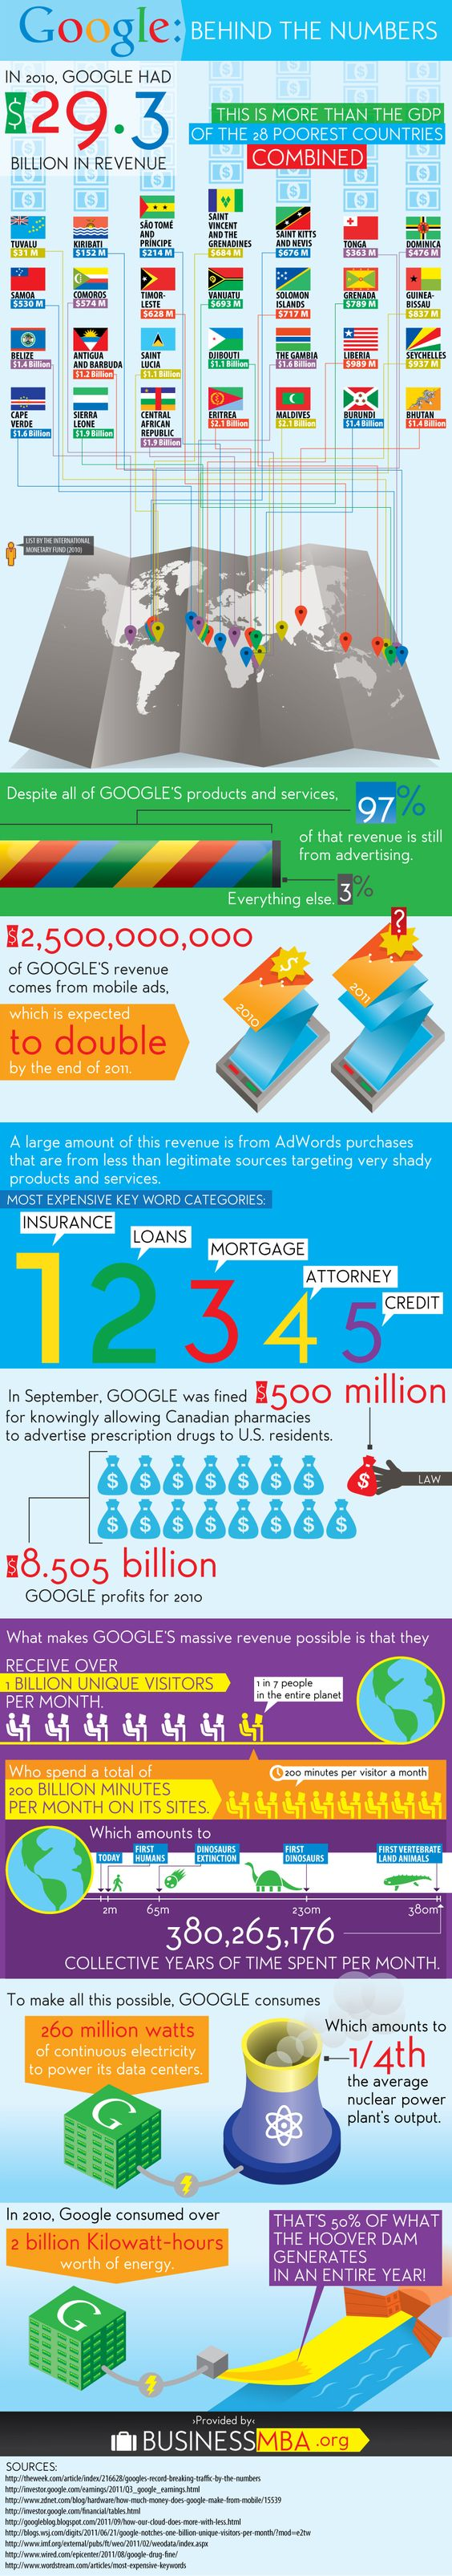 .@Google Behind the Numbers: Business Metrics - Infographic #google #data